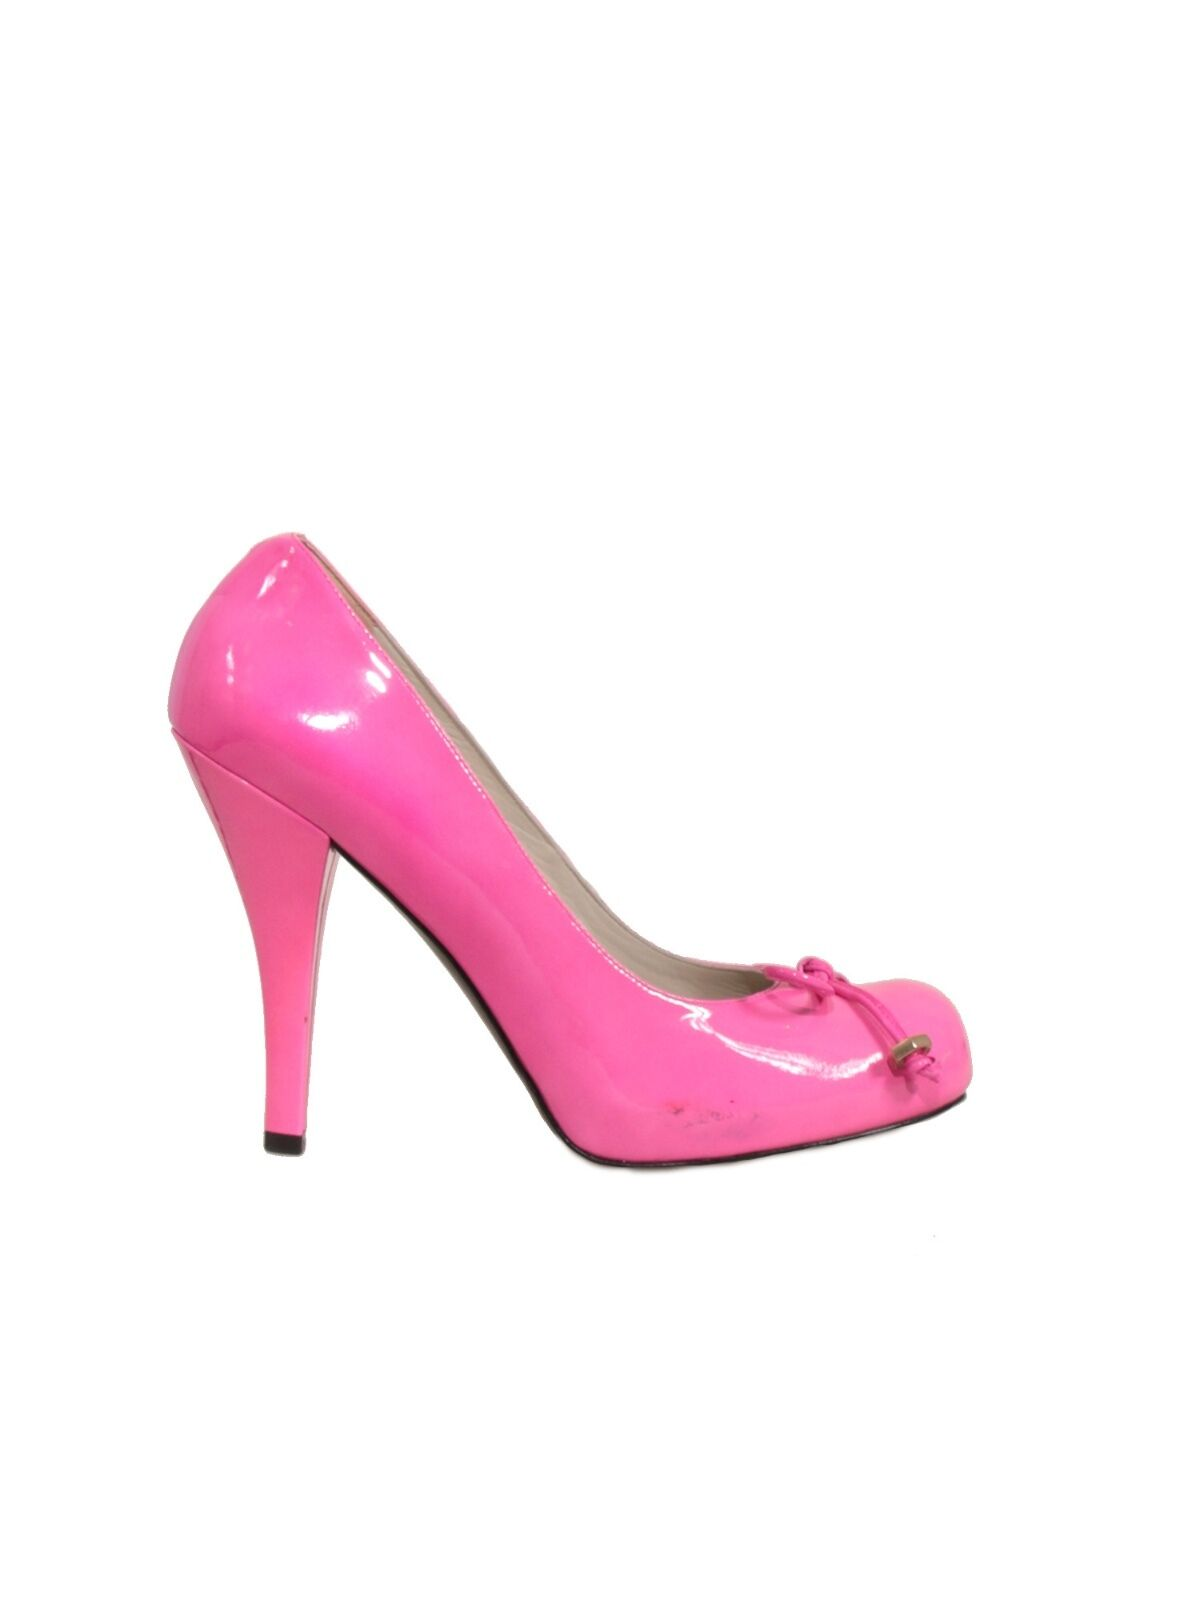 NEW  MARC BY MARC JACOBS Pink Patent Pumps (SIZE 40)